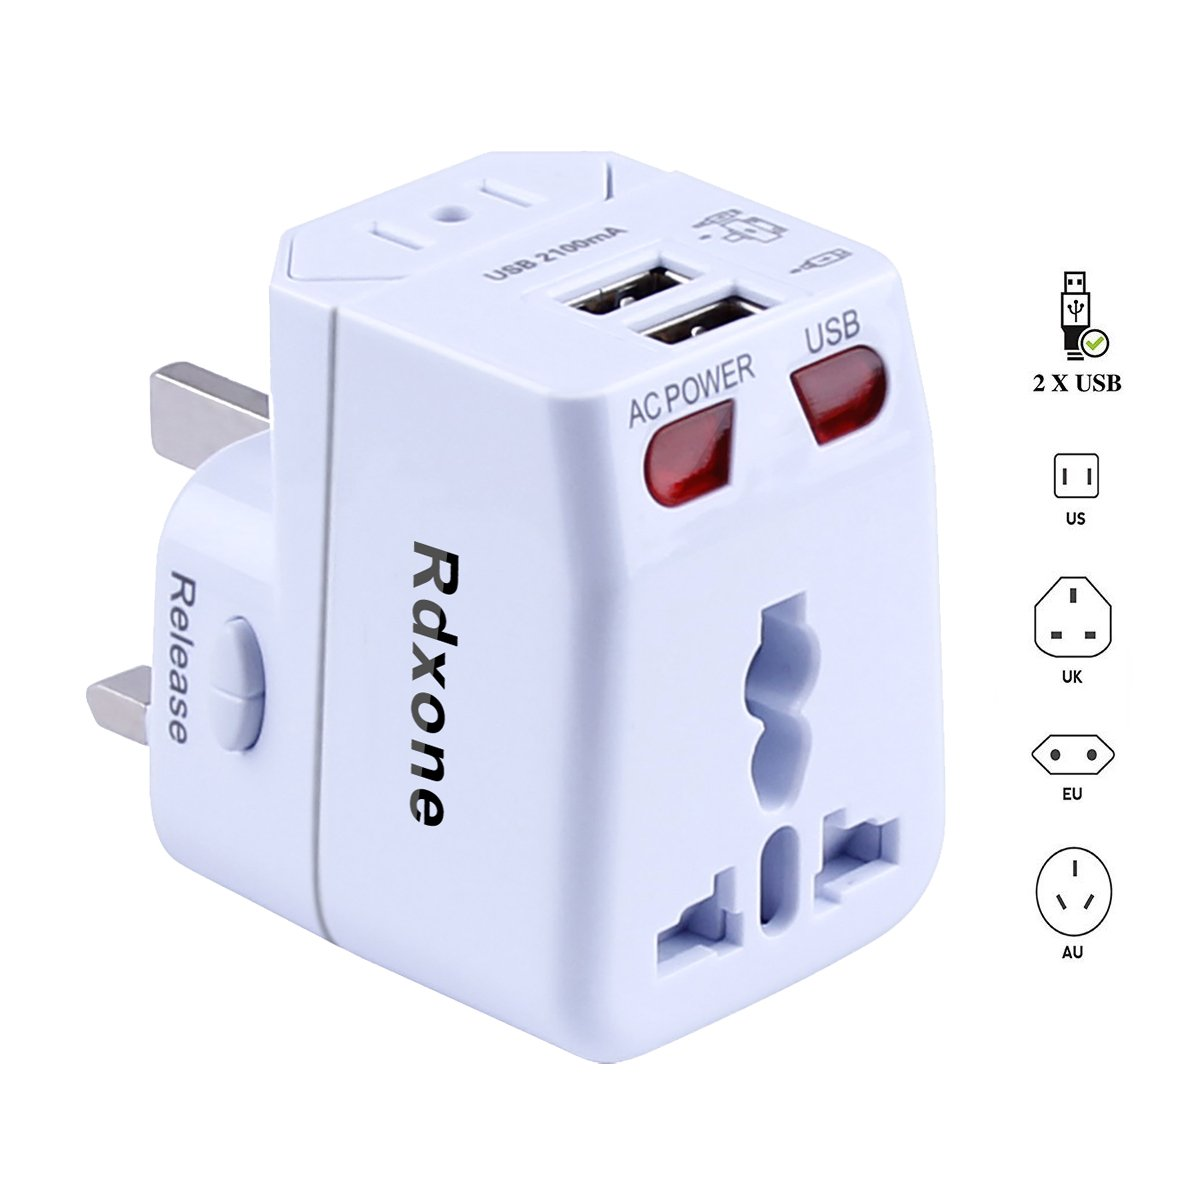 Rdxone Travel Adapter, Universal Plug Adapter with 2 USB for Europe, Italy, Ireland, UK, AU, Asia, Over 150 Countries -with Spare Fuse by Rdxone